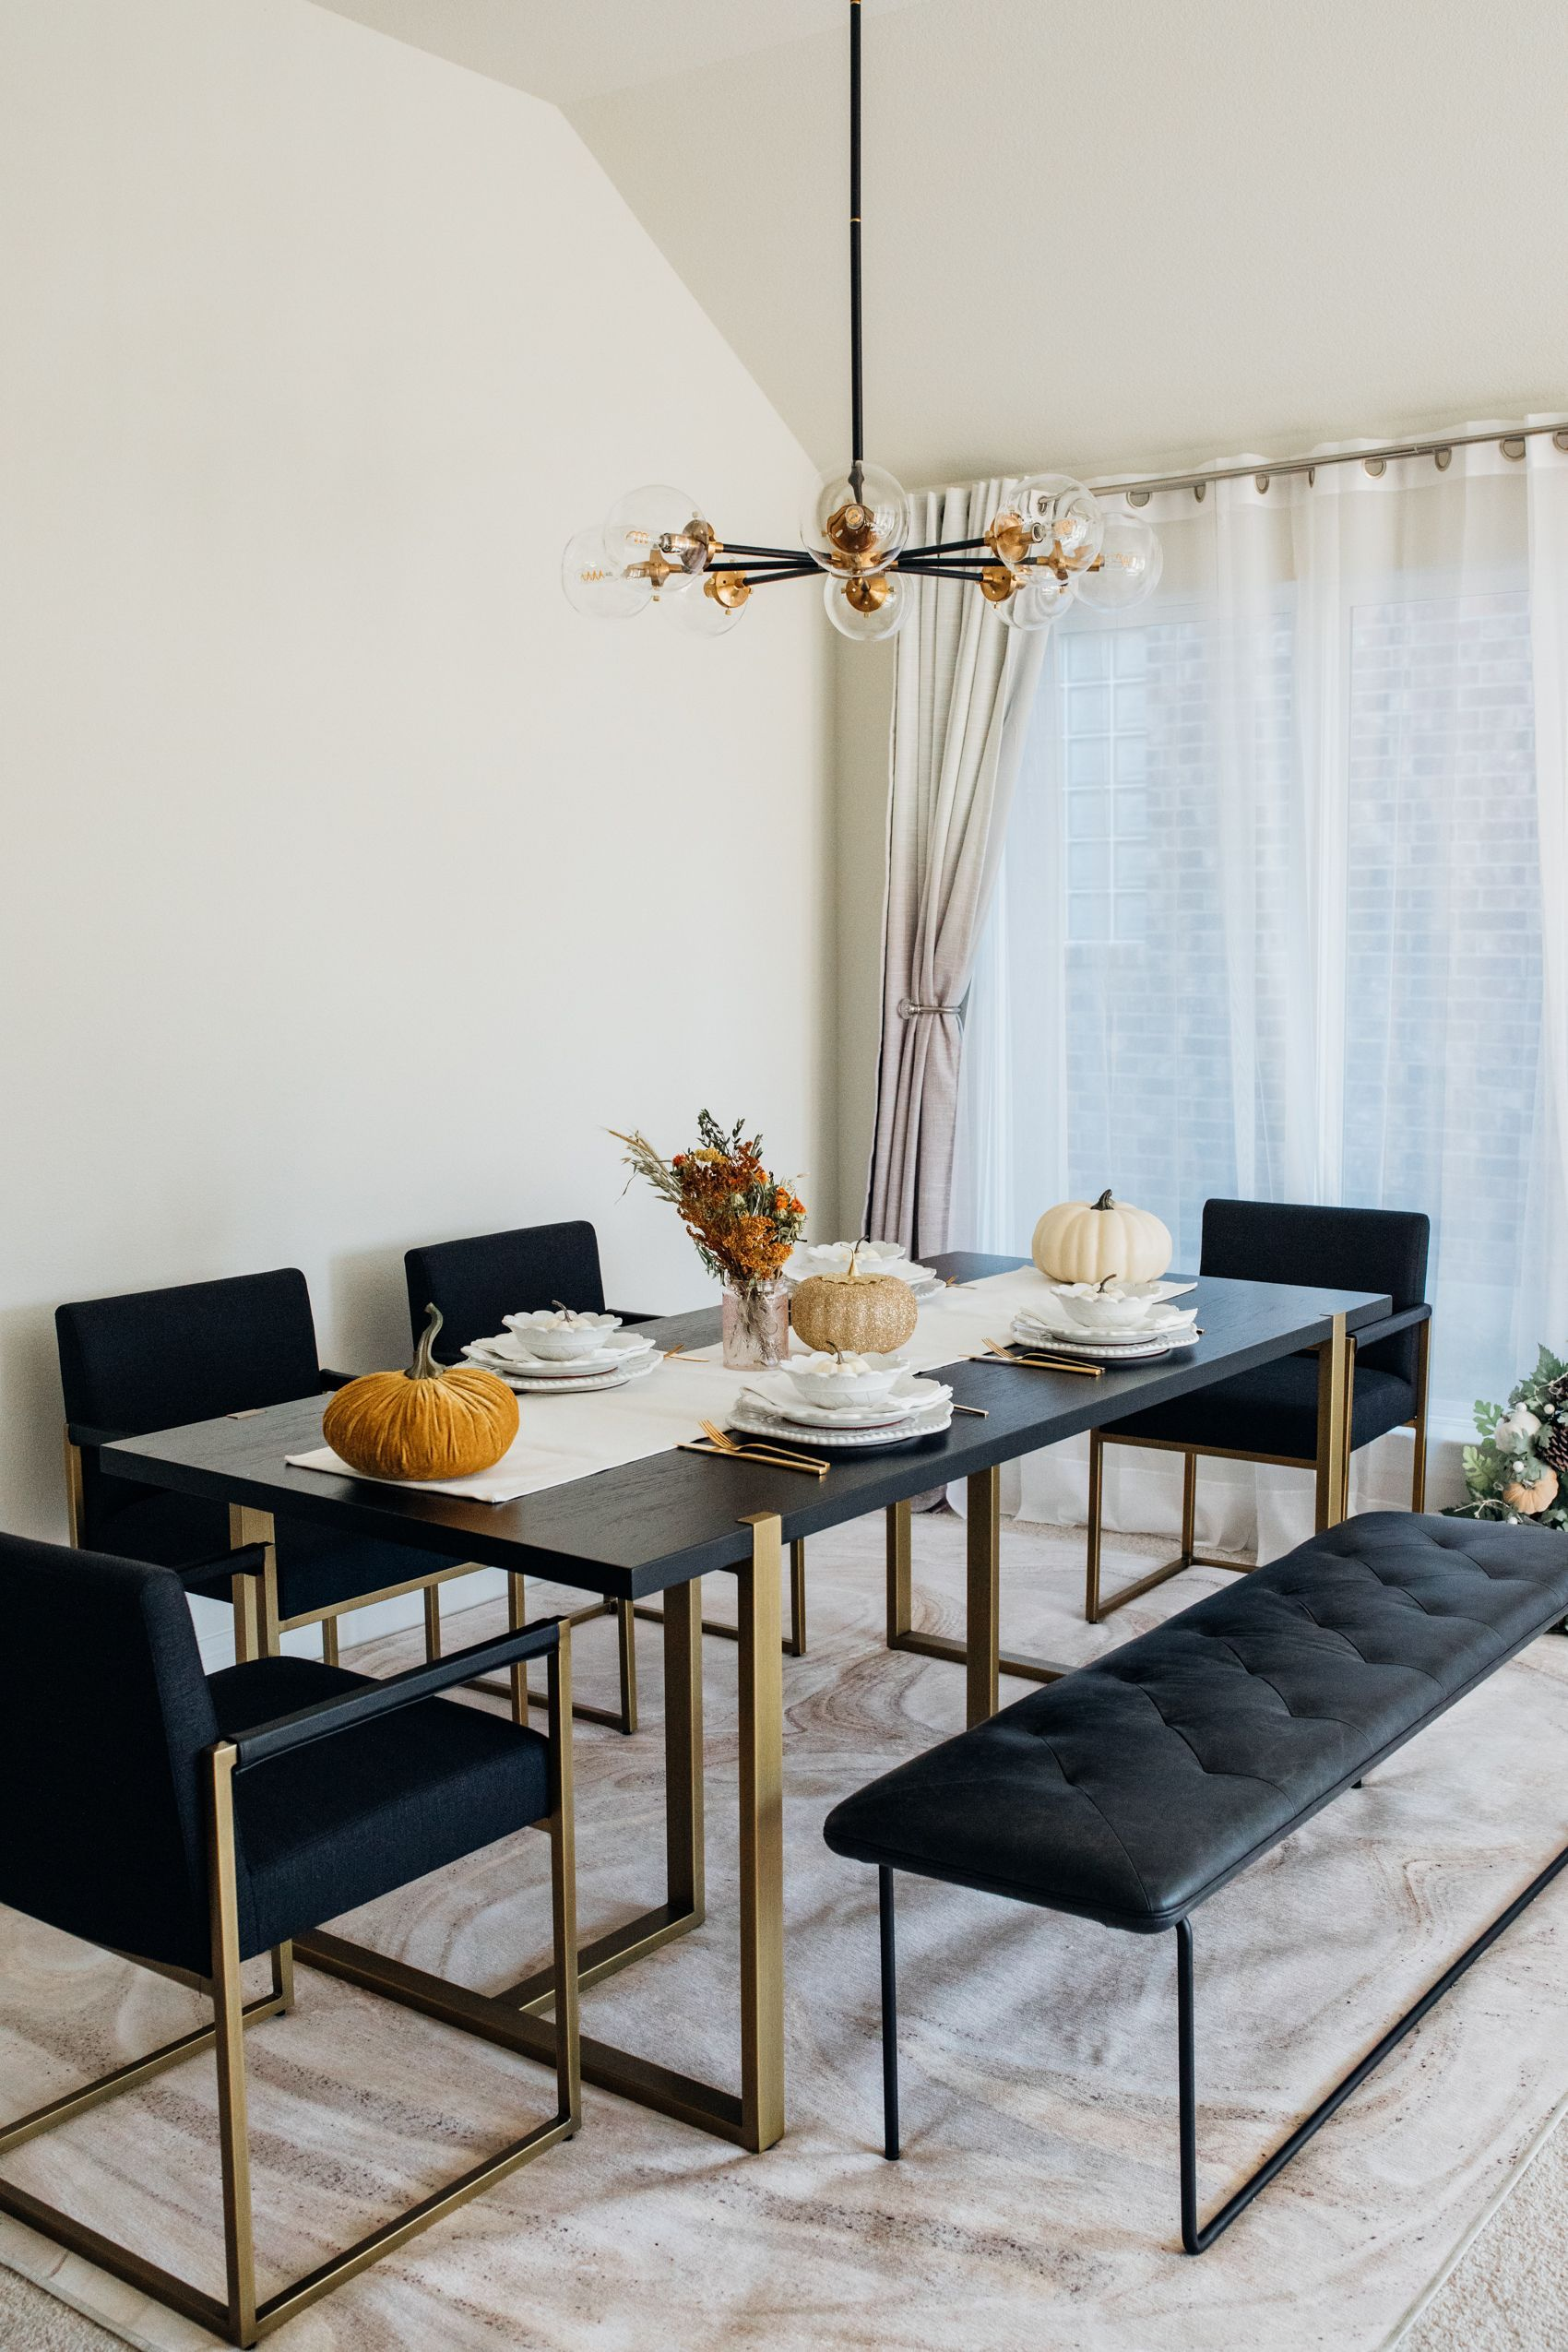 Article Oscuro Dining Table With Gold Legs In A Modern Dining Room For Thanksgiving Gold H Modern Dining Room Tables Minimalist Dining Room Modern Dining Room